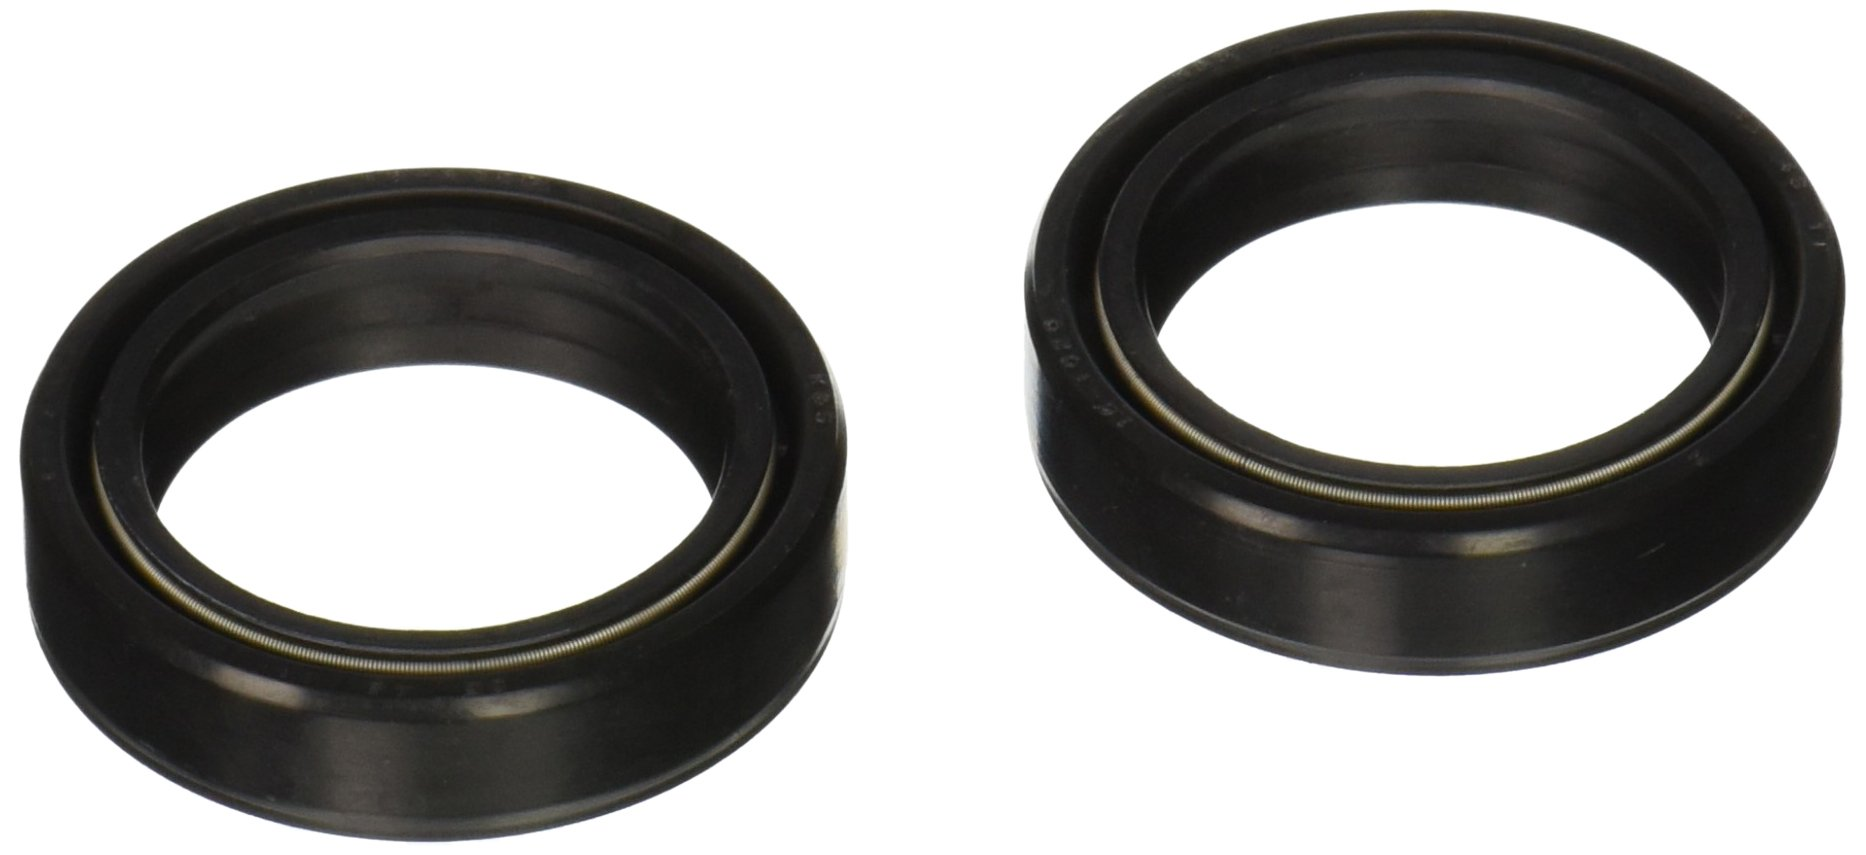 K&S 16-1020 Fork Oil Seal Set